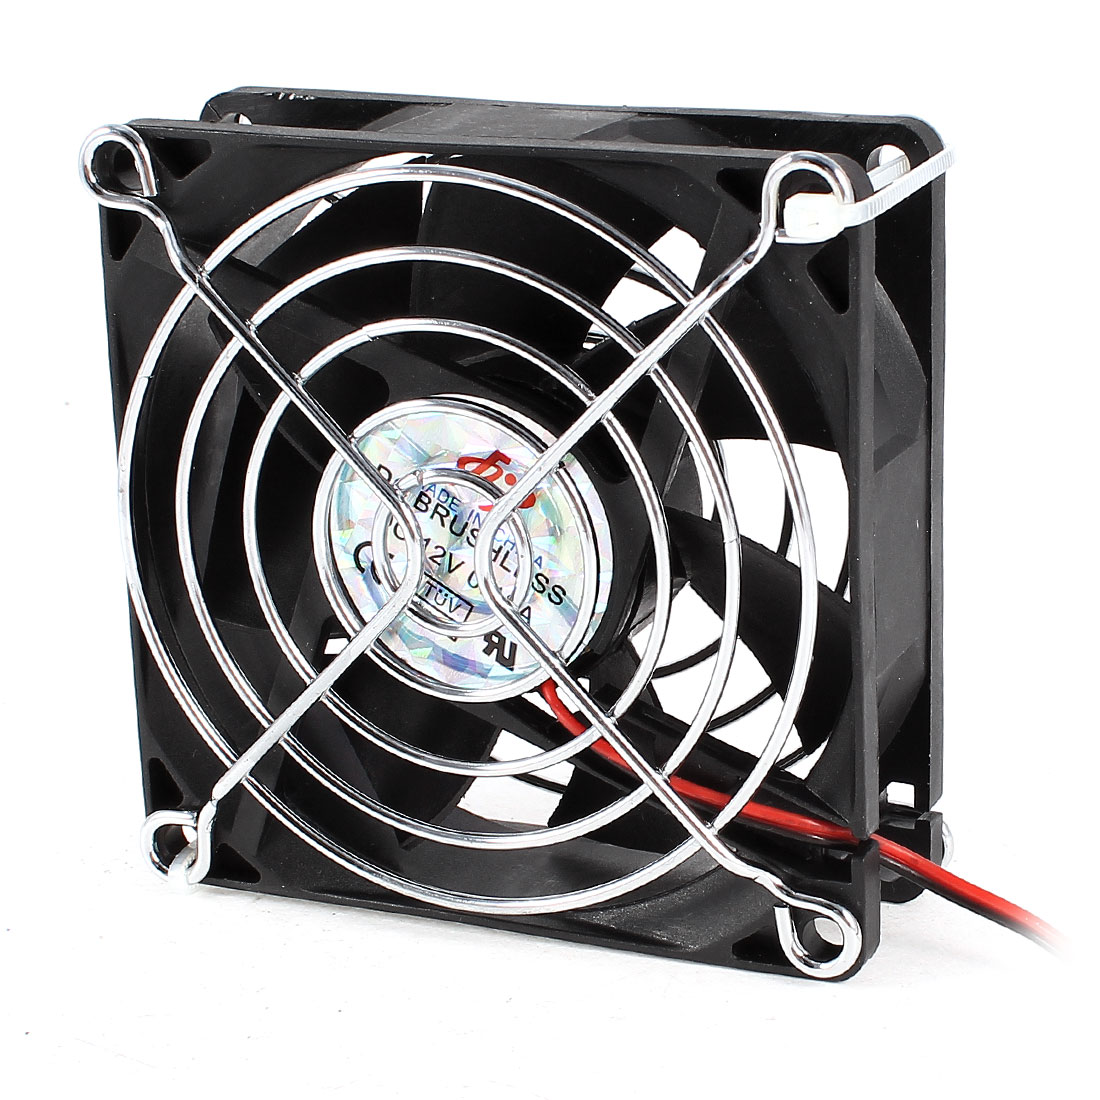 DC 12V 0.18A Metal Grill 80mmx25mm Cooling Fan Cooler Black for Computer Case